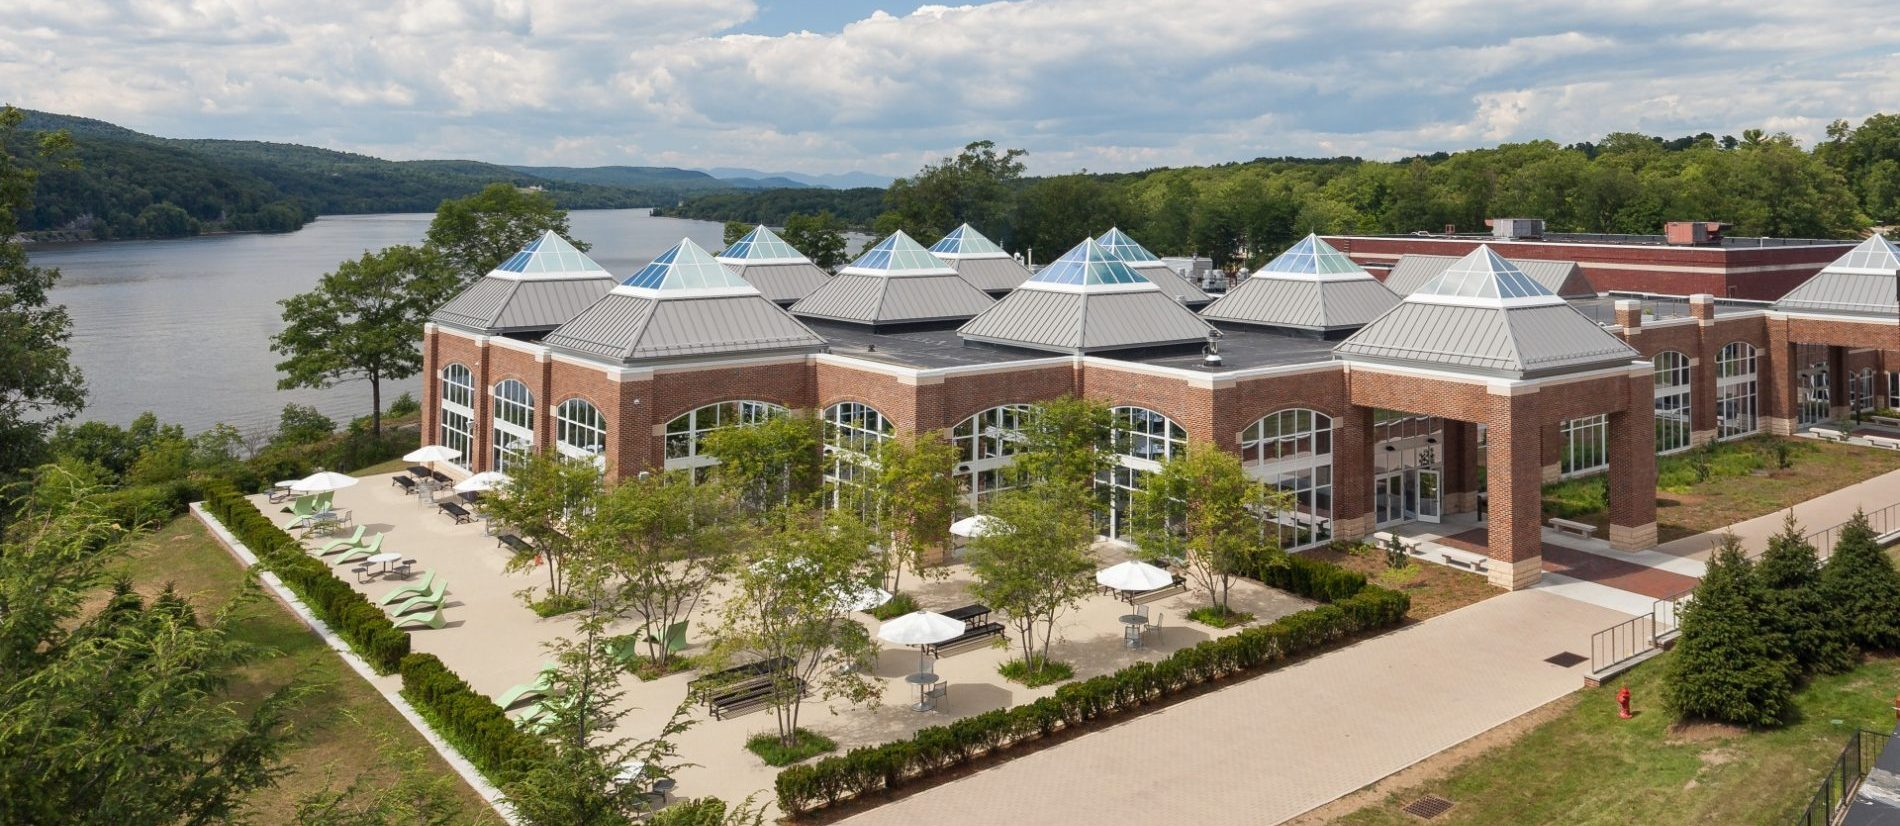 Higher Education - The Student Commons at Hyde Park Campus